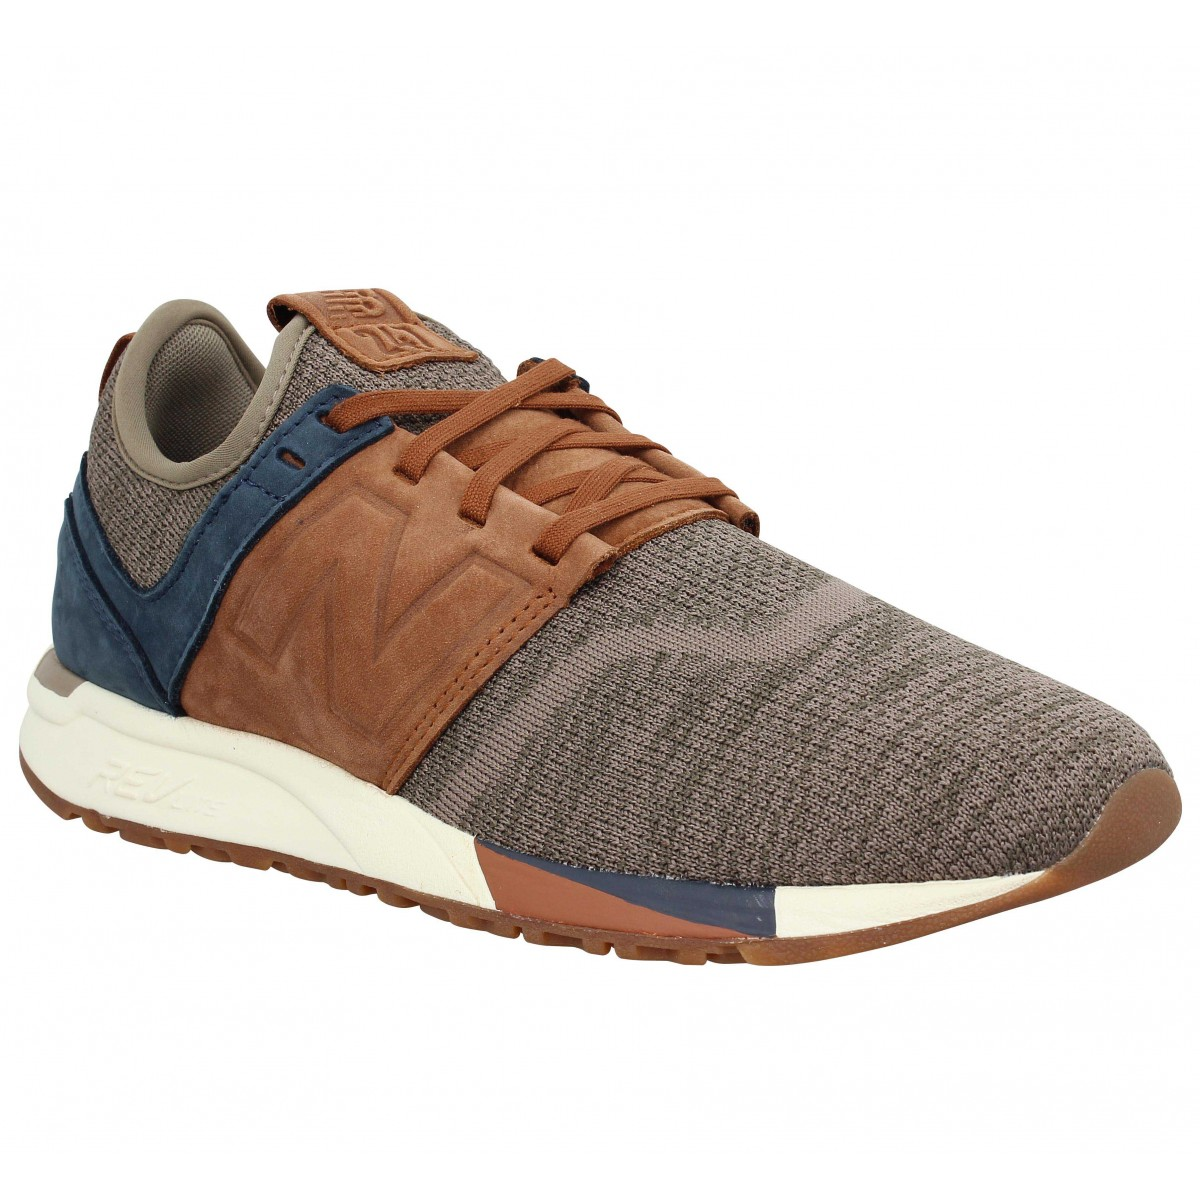 Baskets NEW BALANCE 247 Luxe velours toile Homme Brown